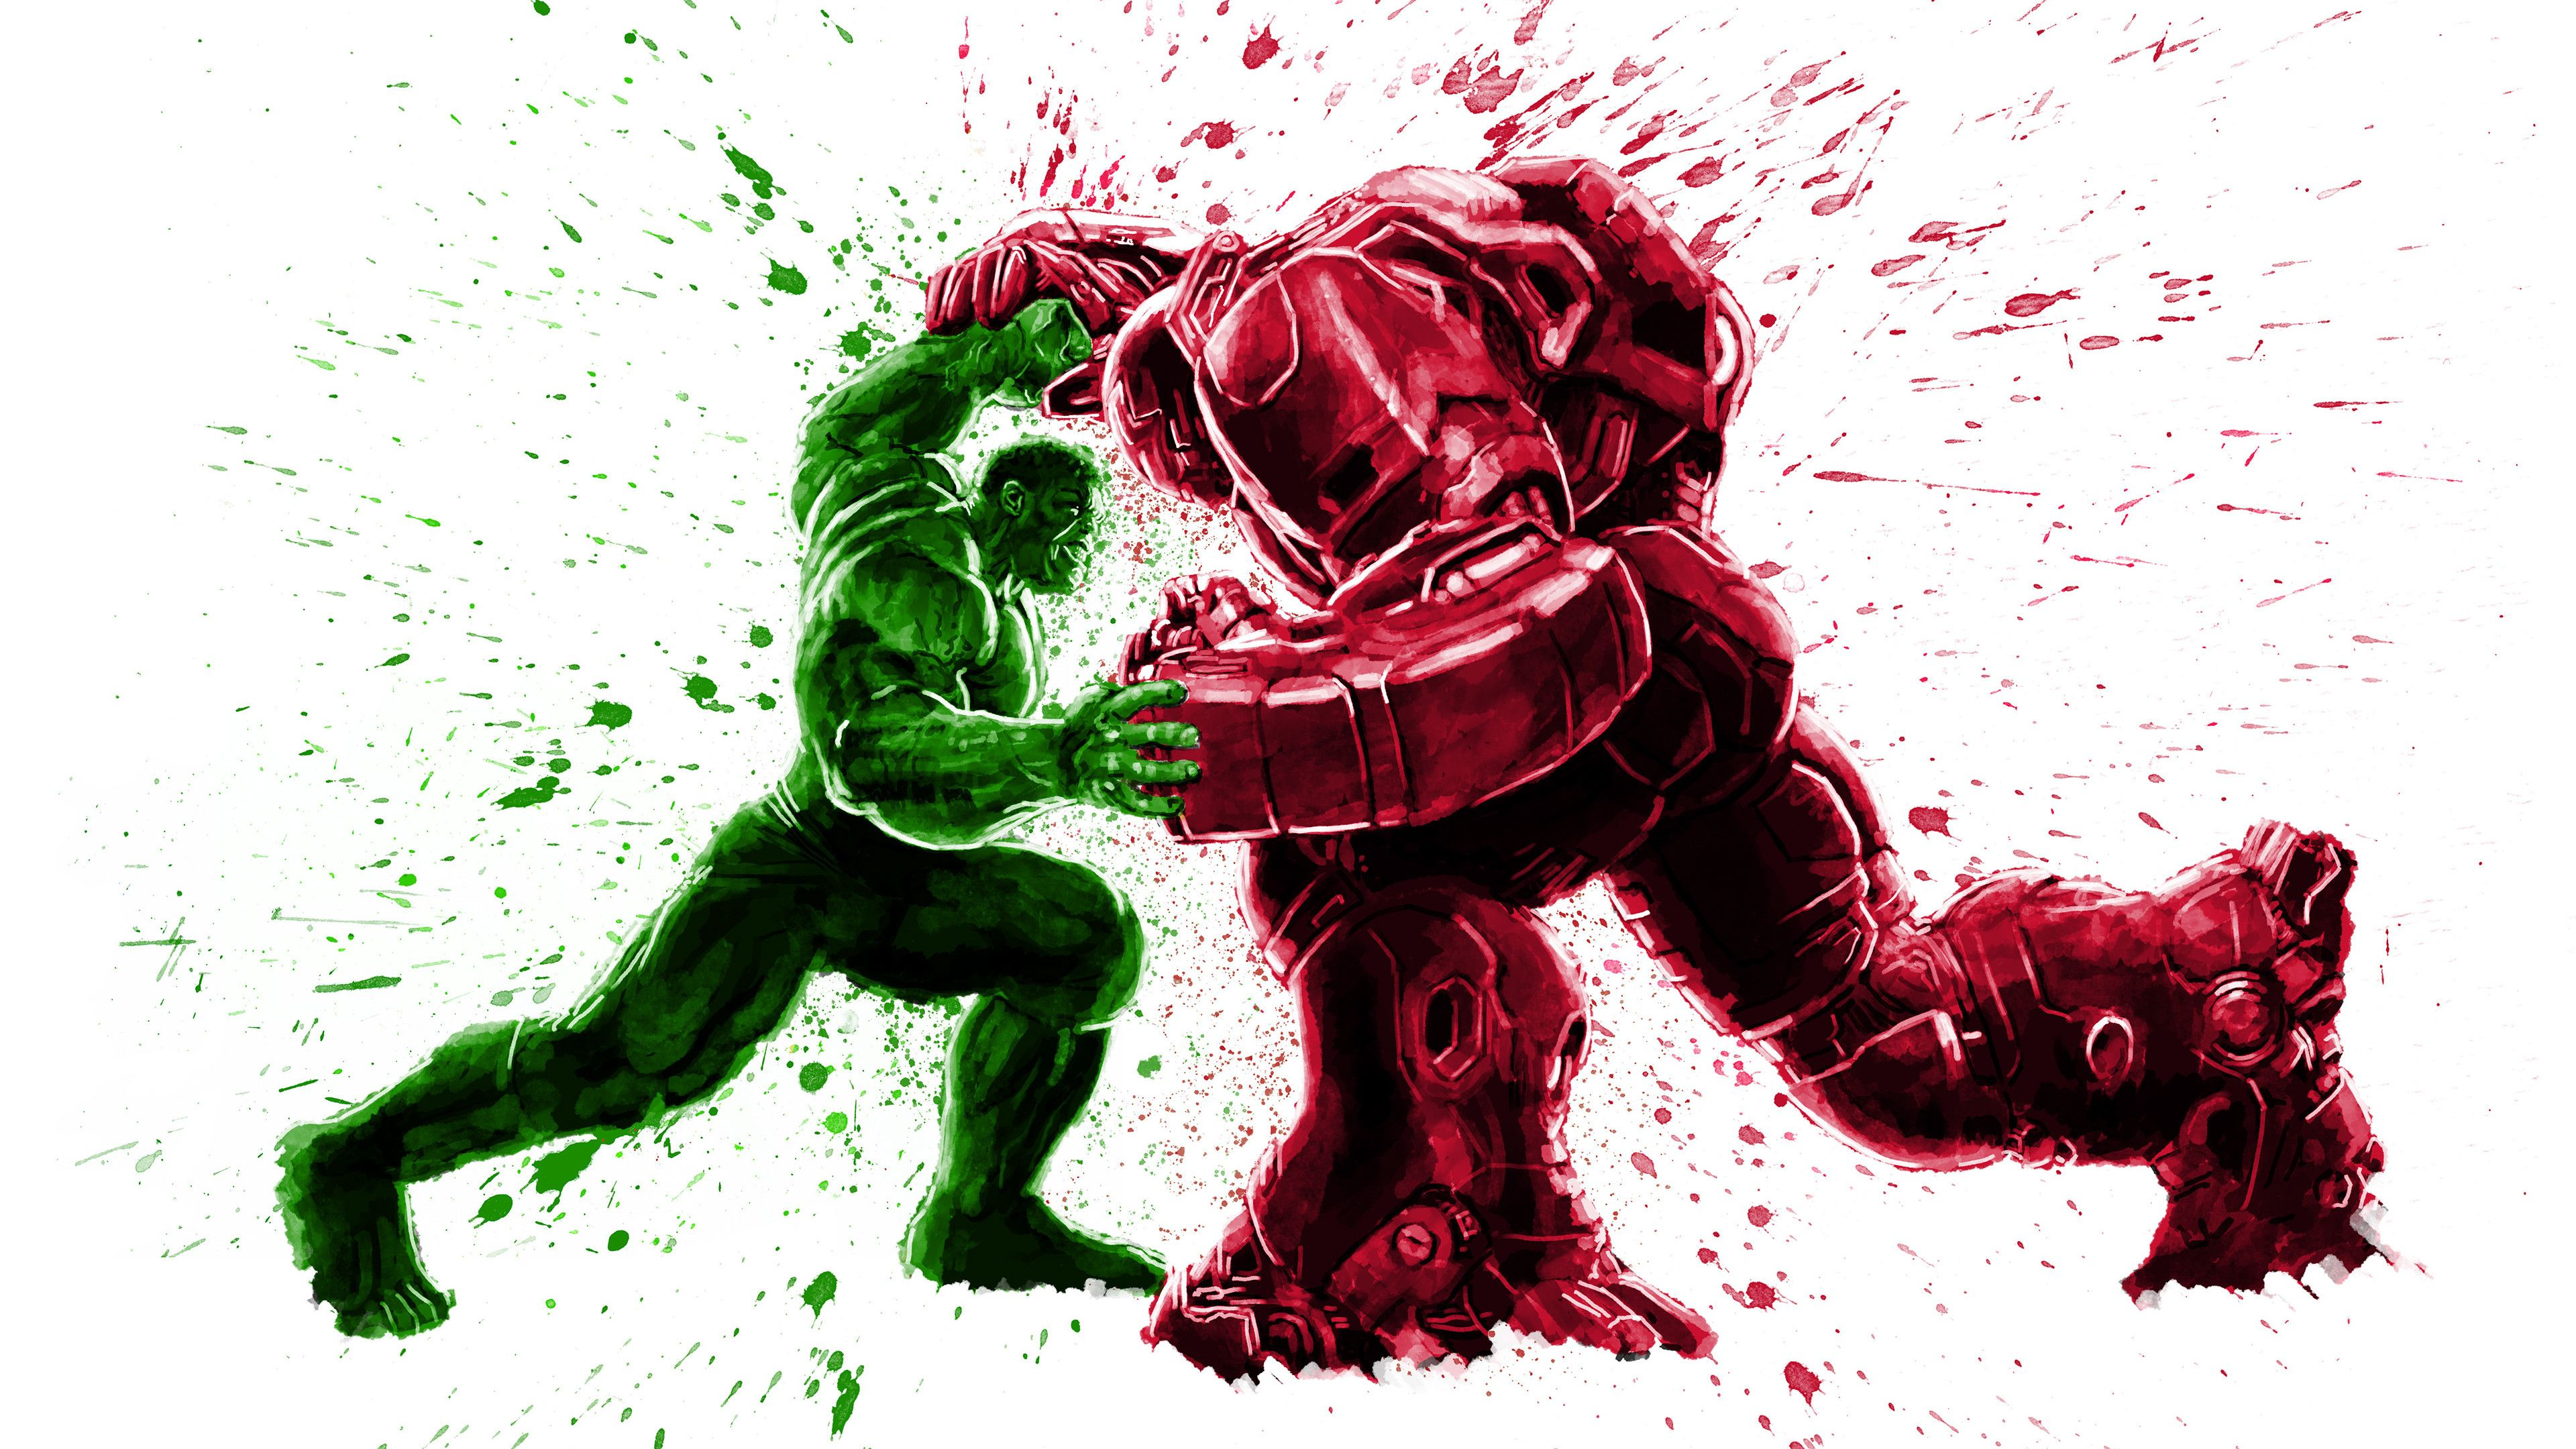 Hulk And Iron Hulkbuster Art 4k Superheroes Wallpapers Hulkbuster Wallpapers Hulk Wallpapers Hd Wallpapers Digital Hulk Buster Art Art Wallpaper Hulkbuster